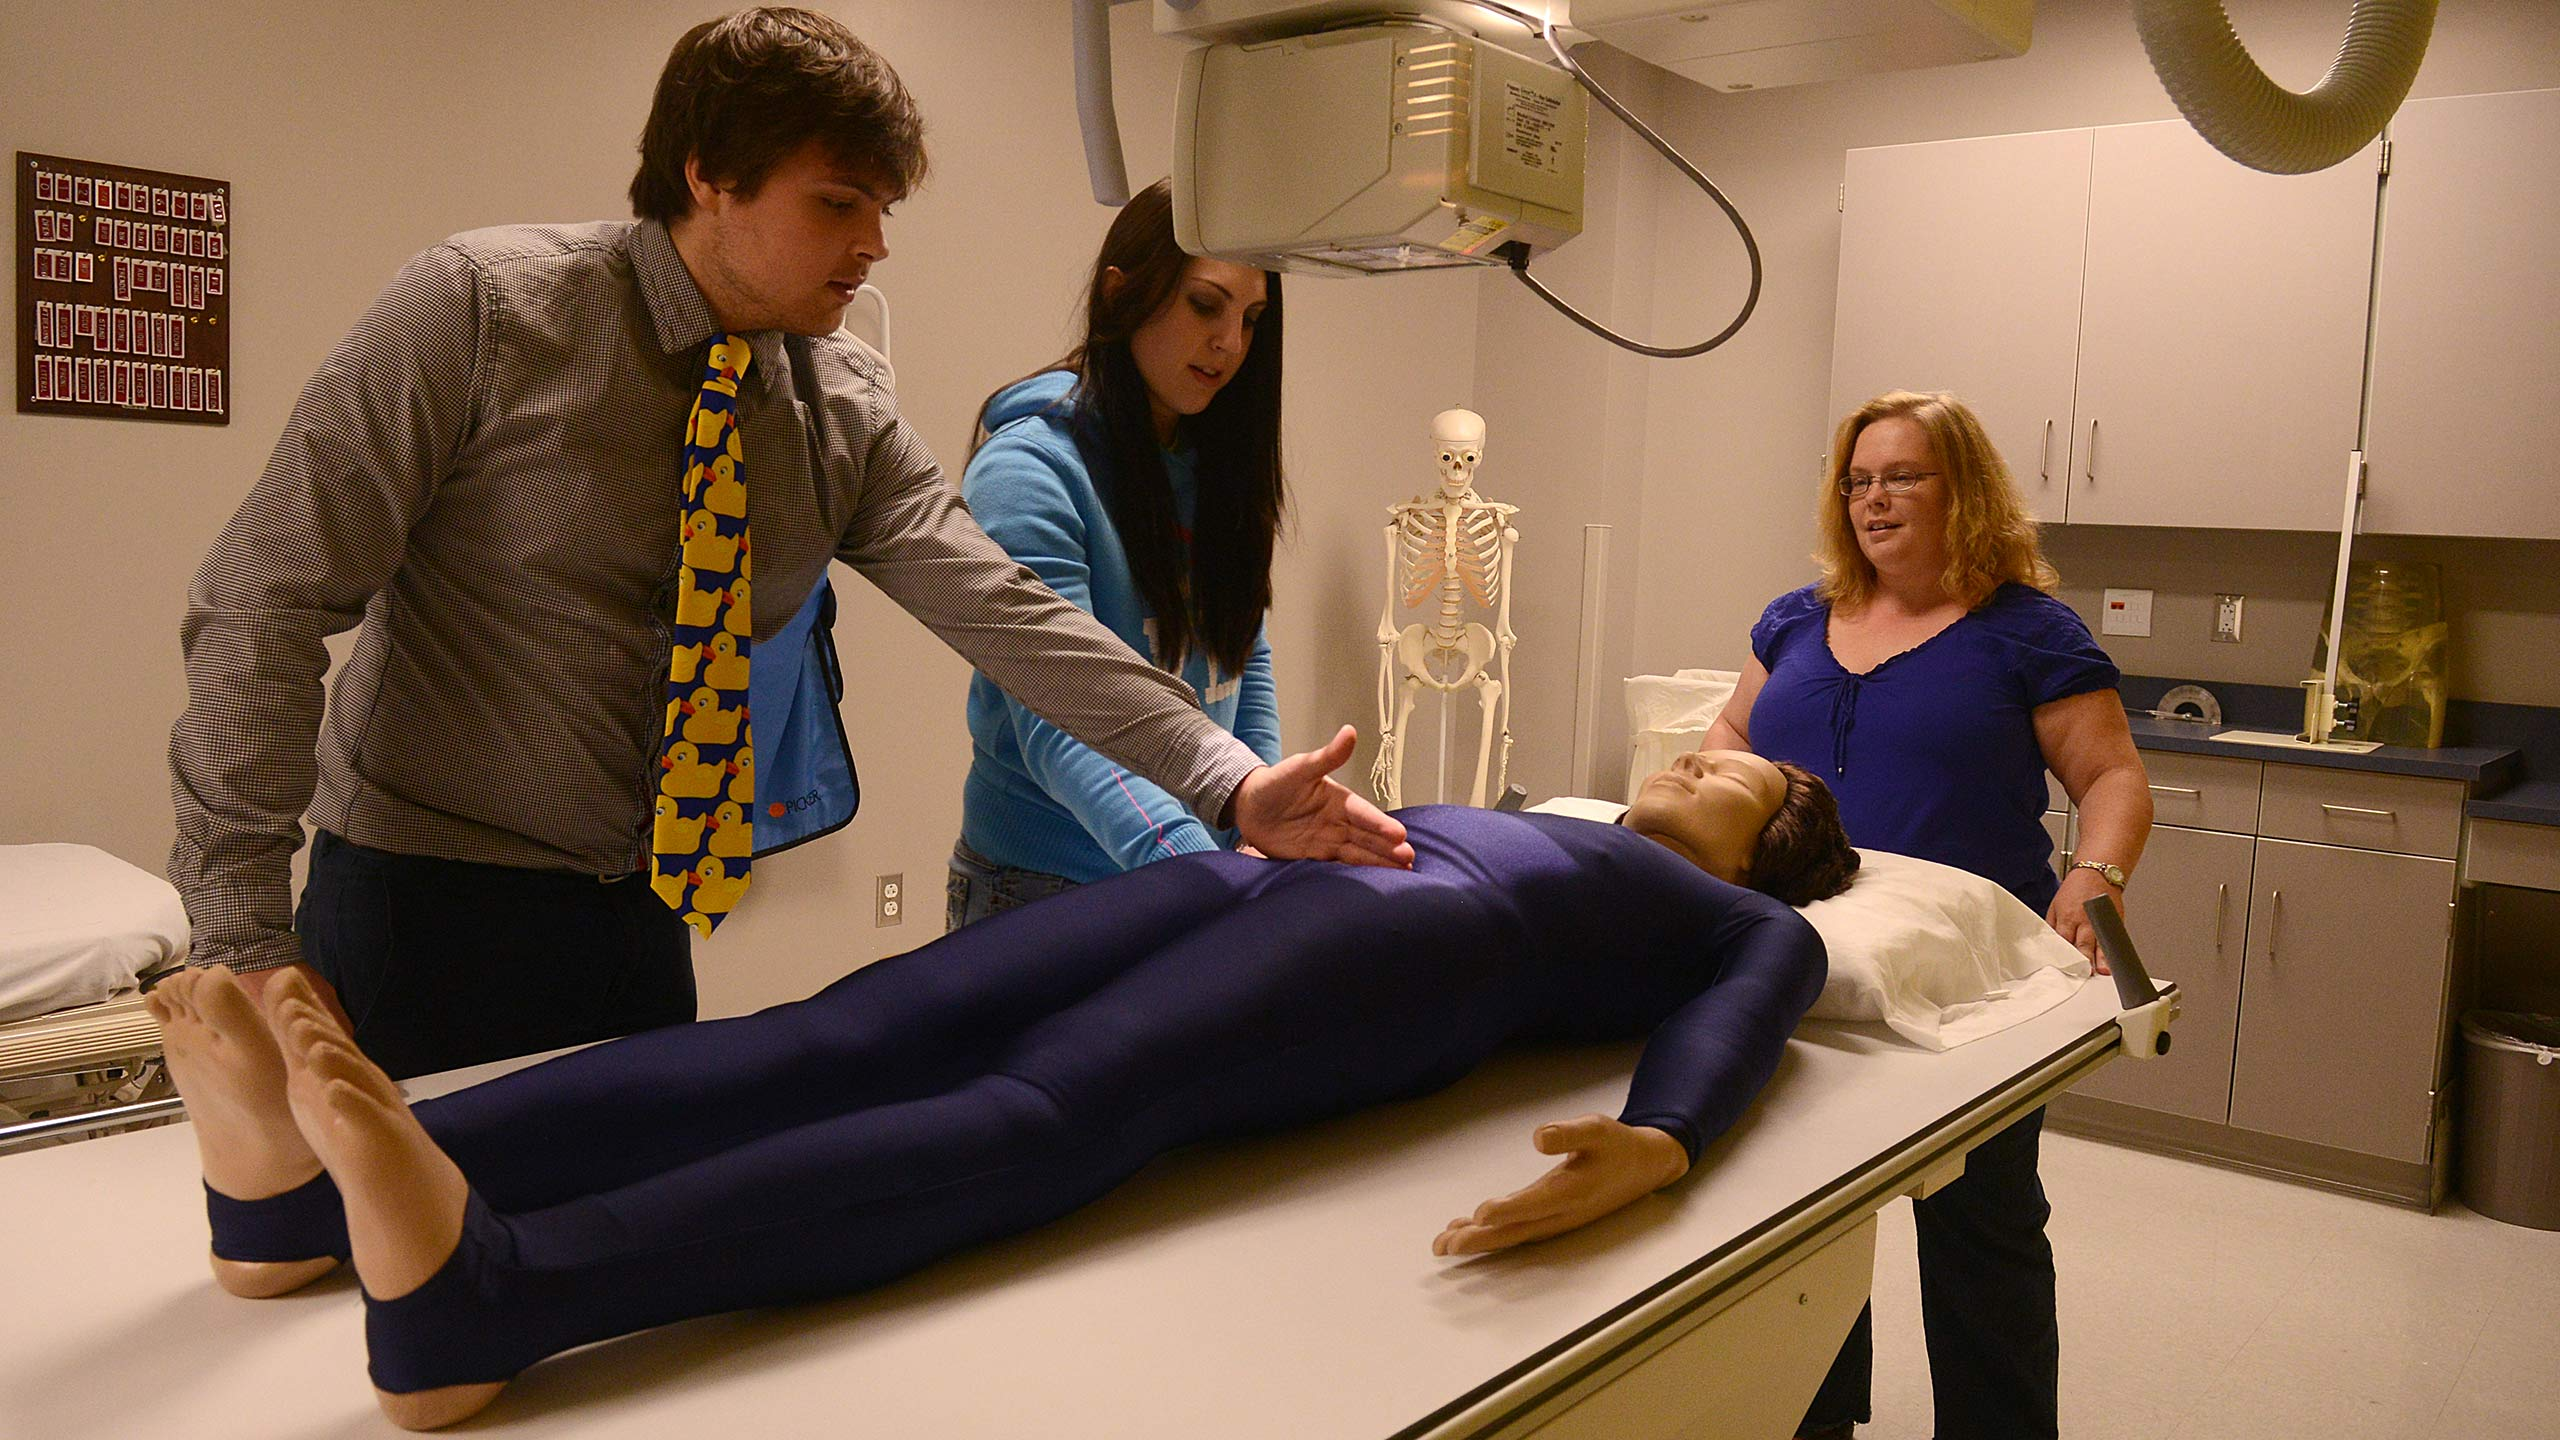 Students in an imaging lab.